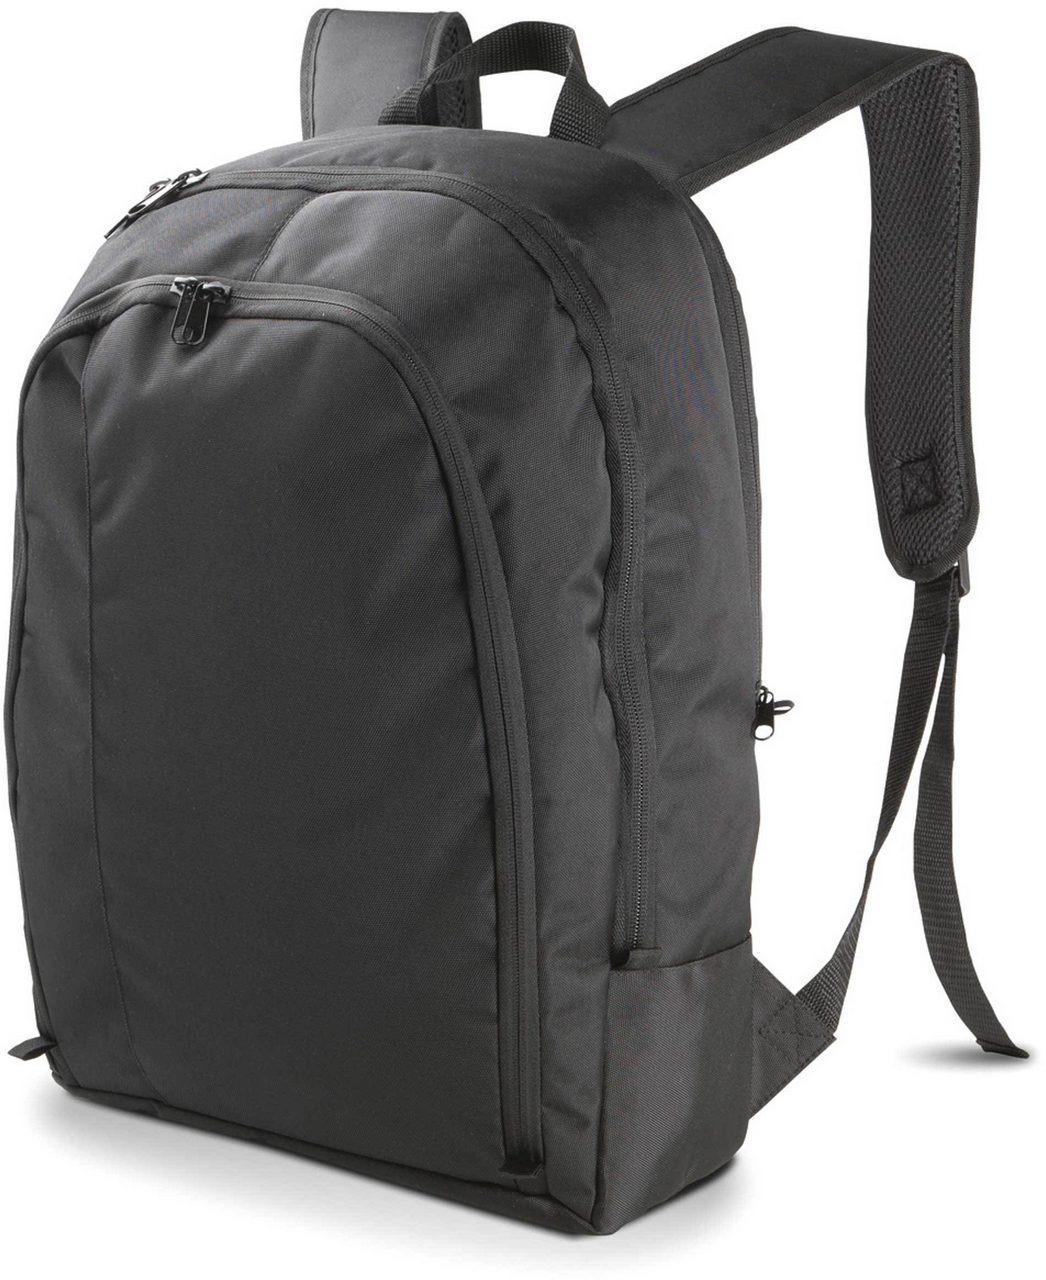 15\ LAPTOP BACKPACK""